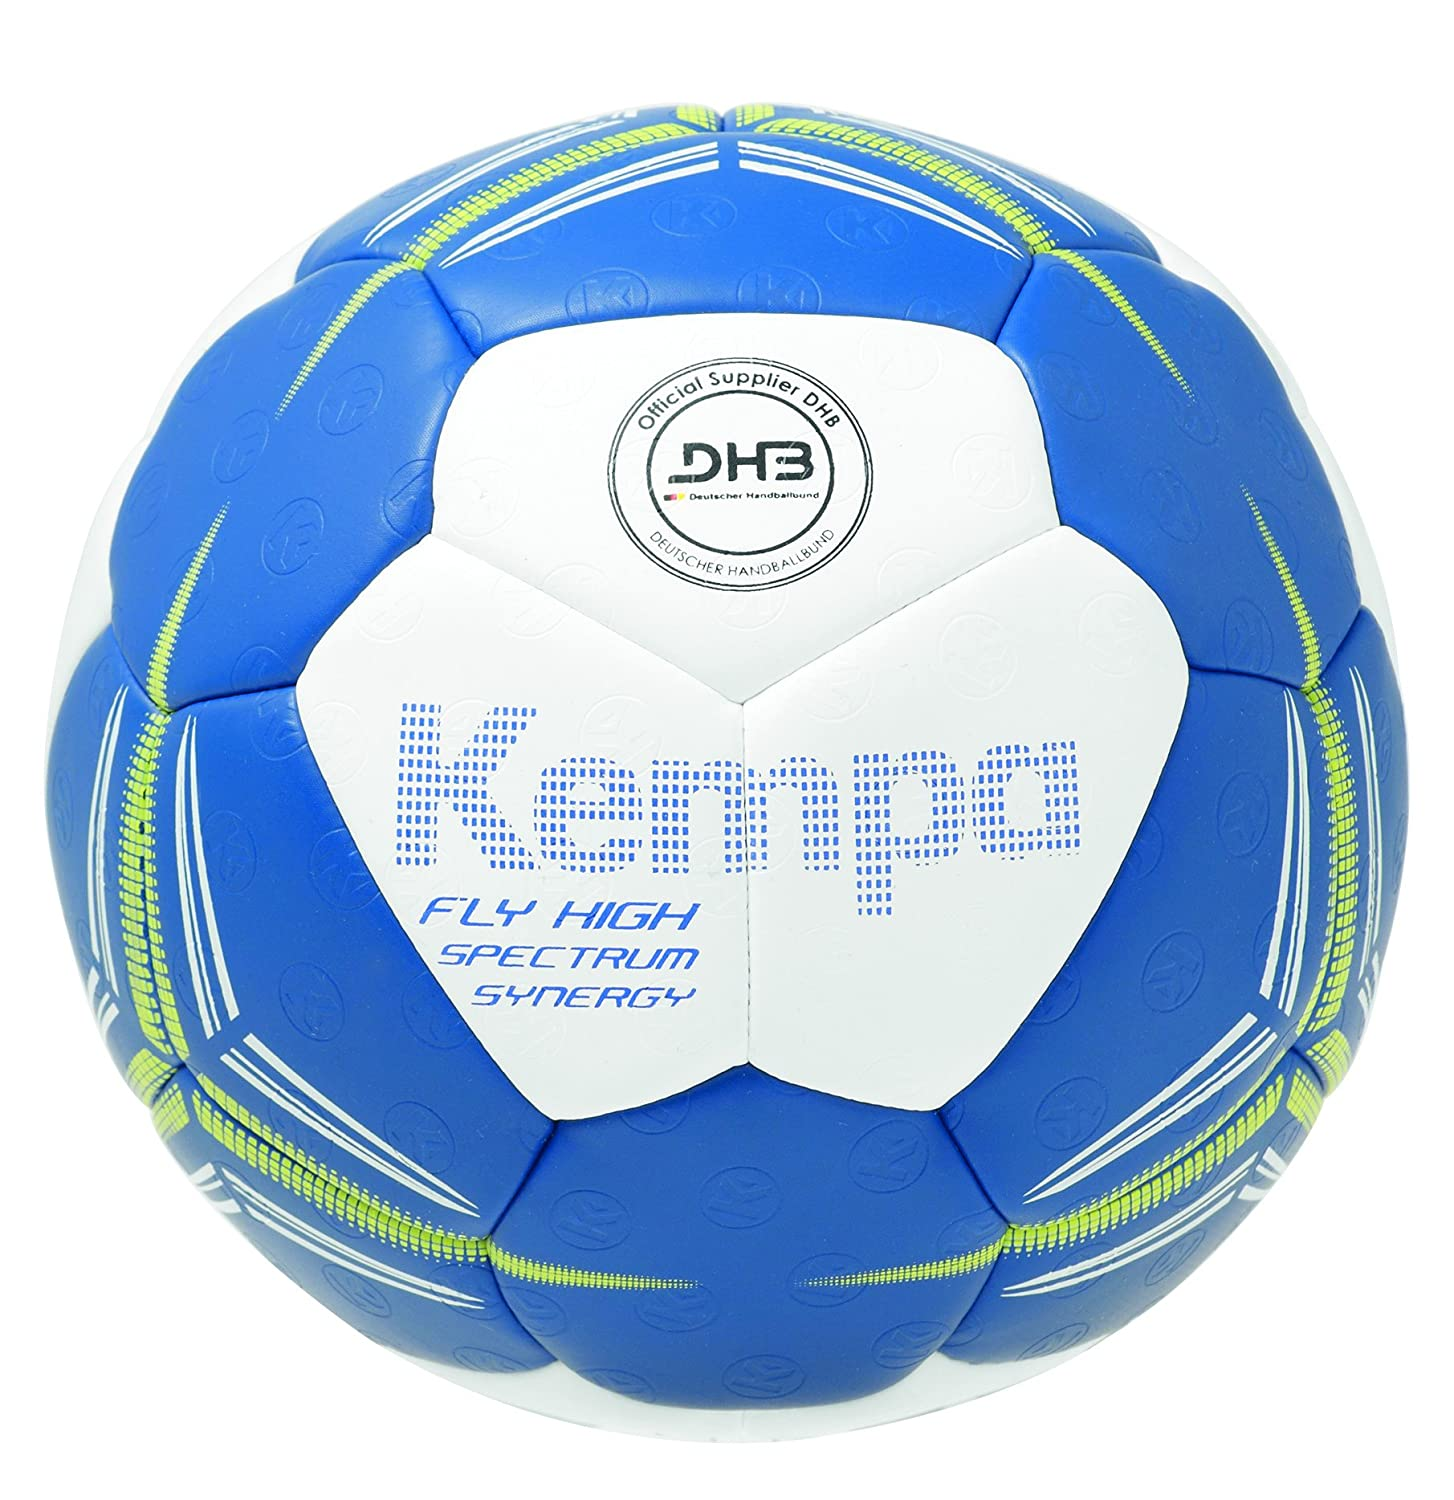 Kempa Hombre Fly High Spectrum Synergy de Balonmano, Color Azul ...